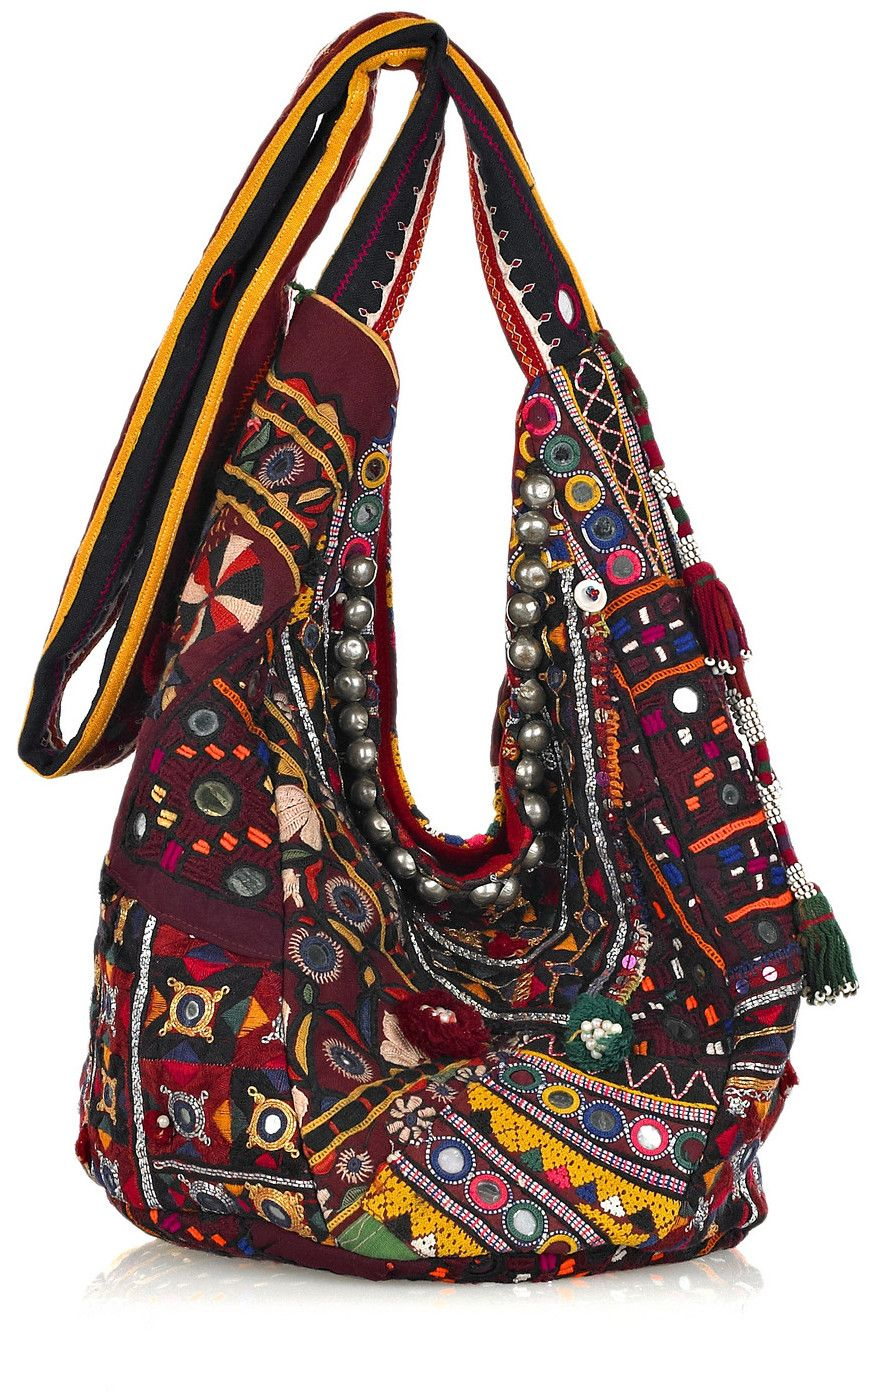 Simone Camille Bags - one-of-a-kind bags using antique textiles and  components e7e66916f527e